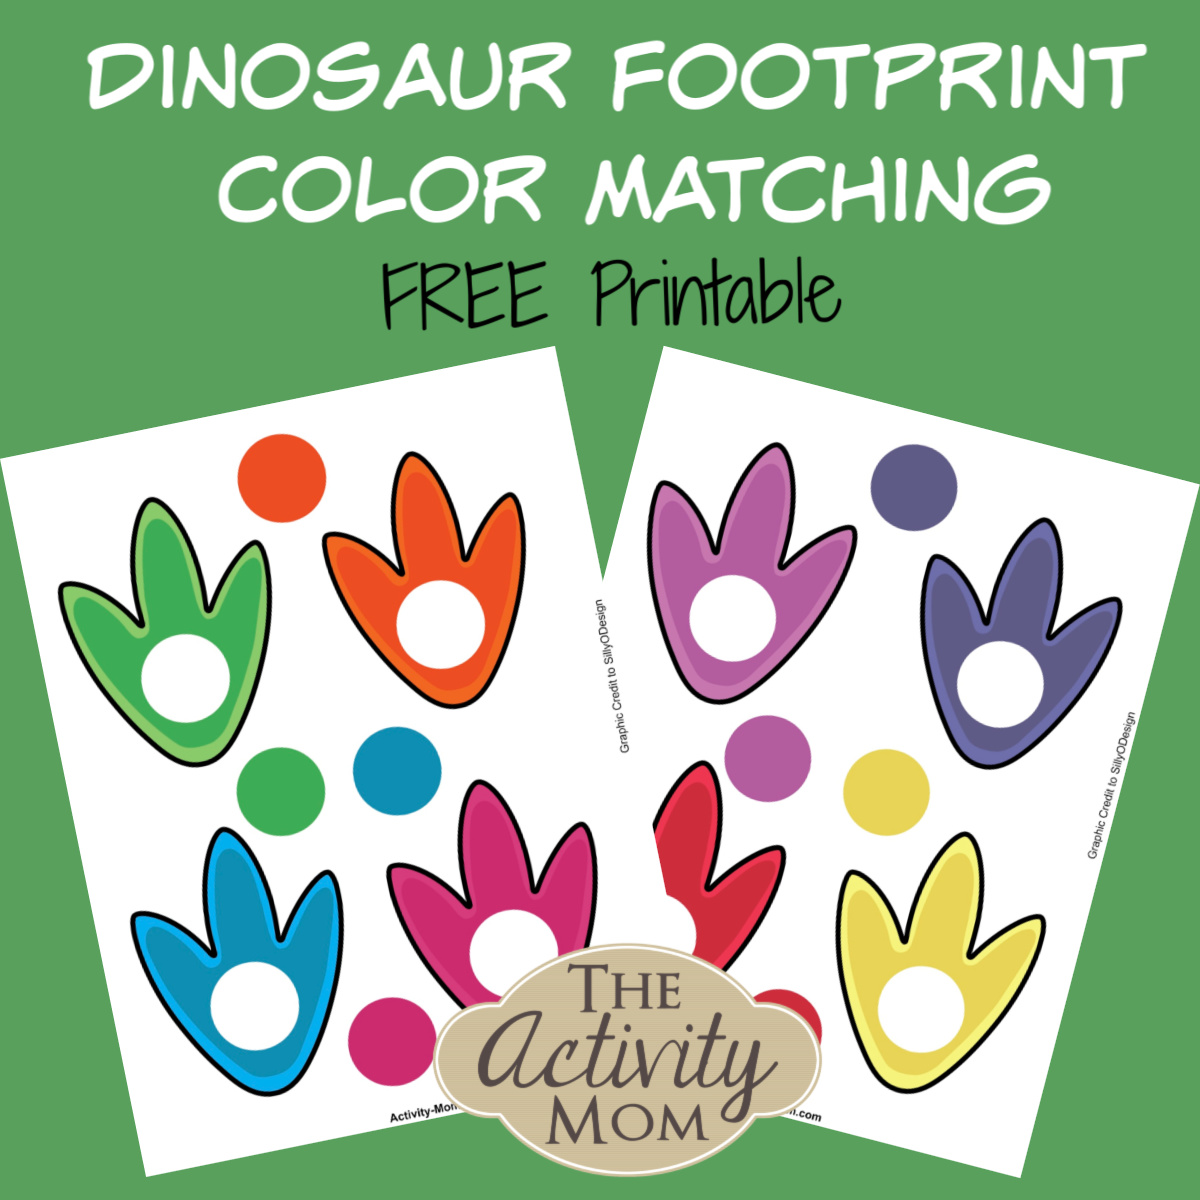 Dinosaur Footprint Color Matching